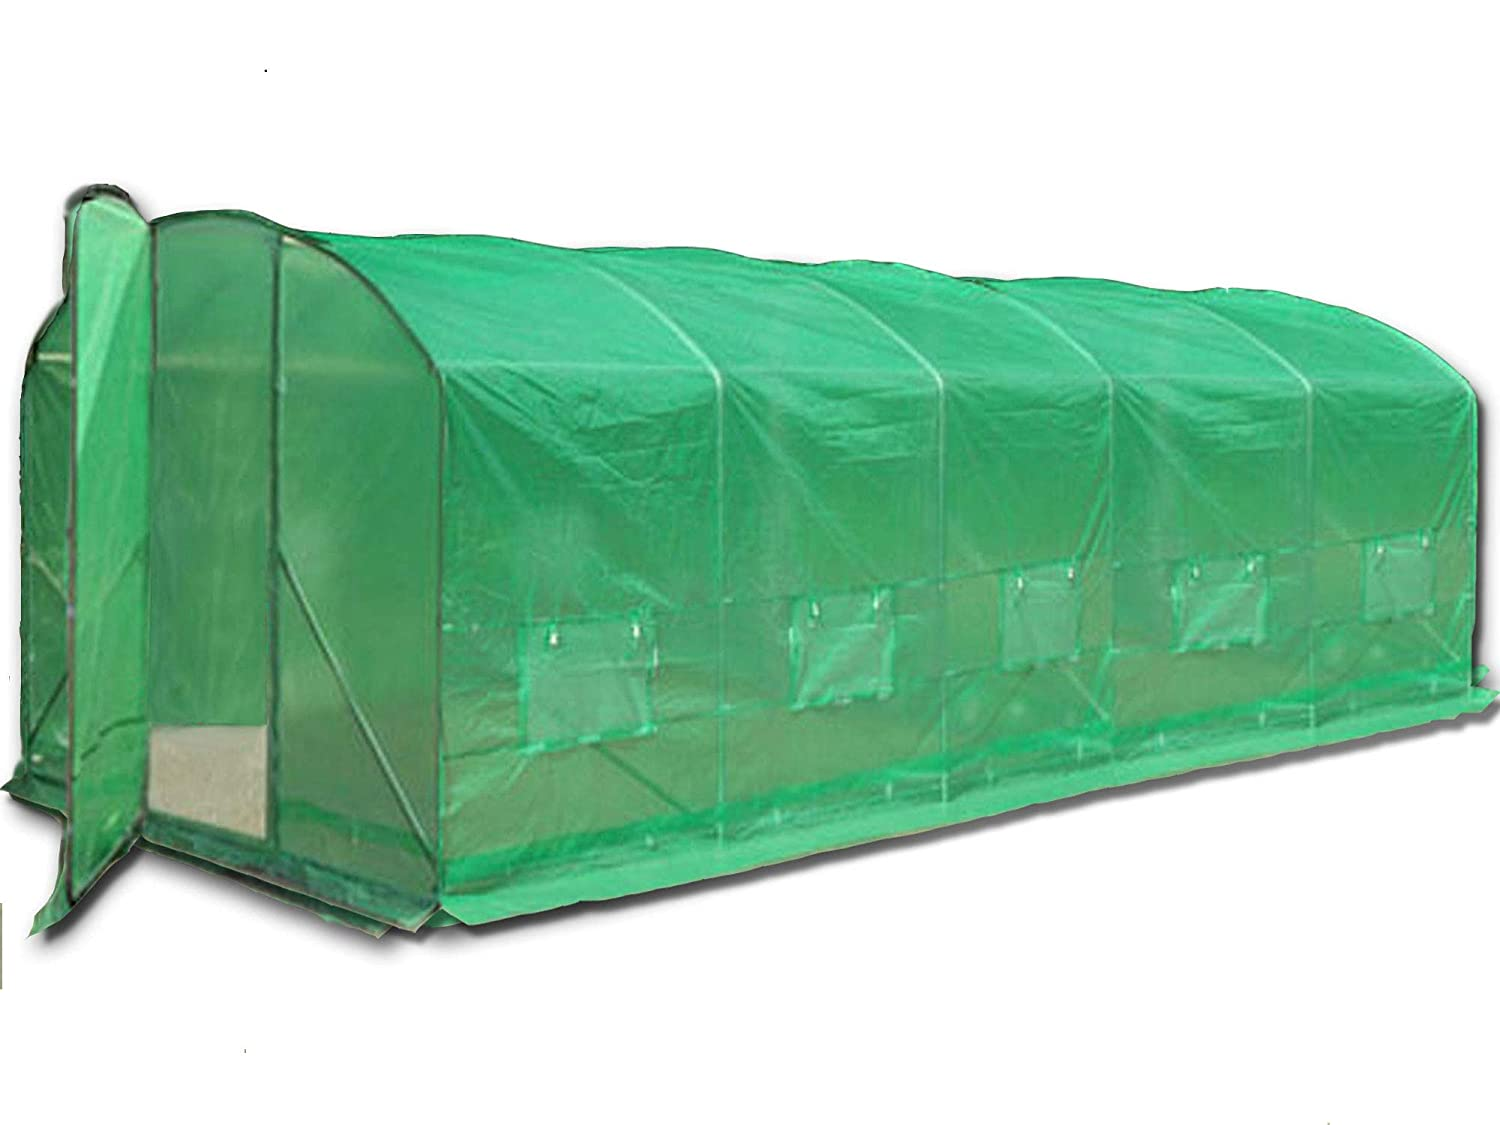 Extreme Polytunnels 4m x 3 5m, 6m x 3 5m, 8m x 3 5m, High Side Extra Wide  for the more serious grower  32mm Frame, Full Height Bracing, Front & Rear